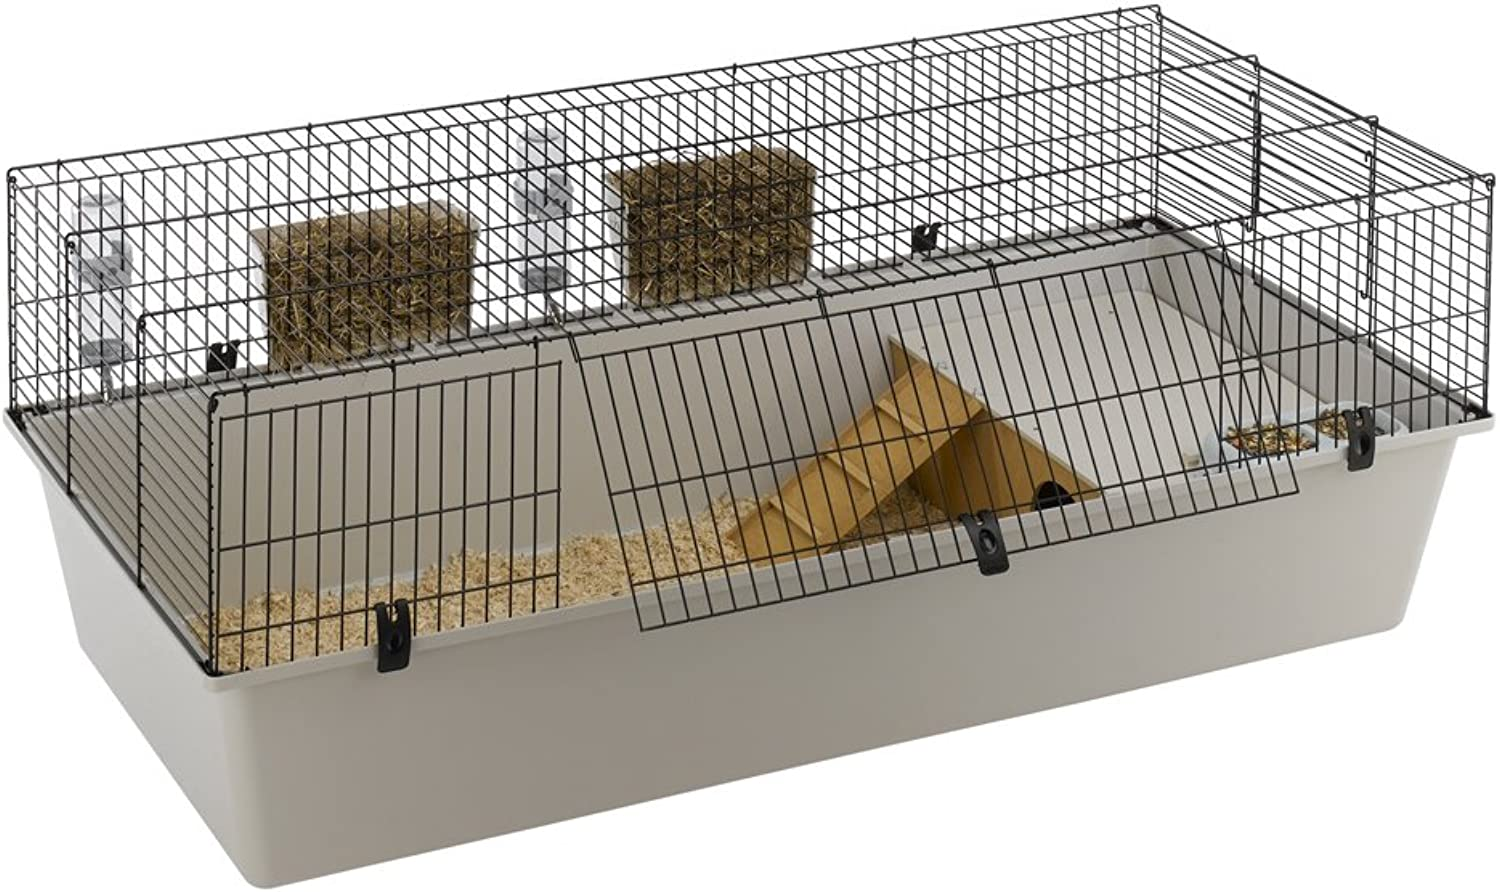 Ferplast Rabbit 160 Cage, 156.5 x 77 x 61.5 cm, Black